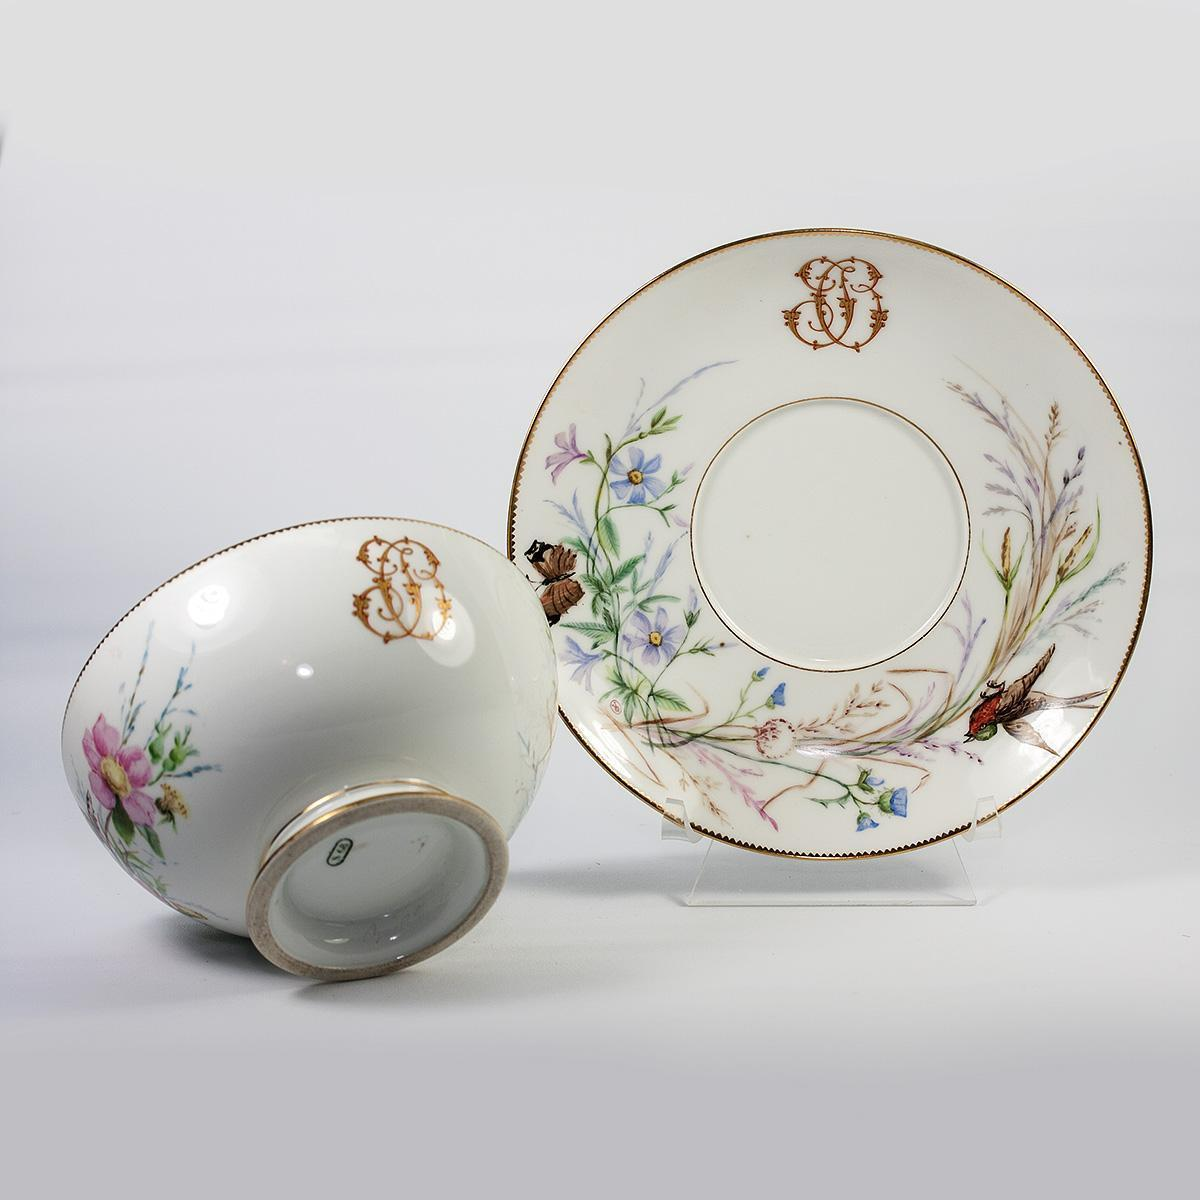 Antique Sevres Hand Painted White Porcelain Service Bowl and large Saucer, c.1874 Marks, Raised Gold Monogram